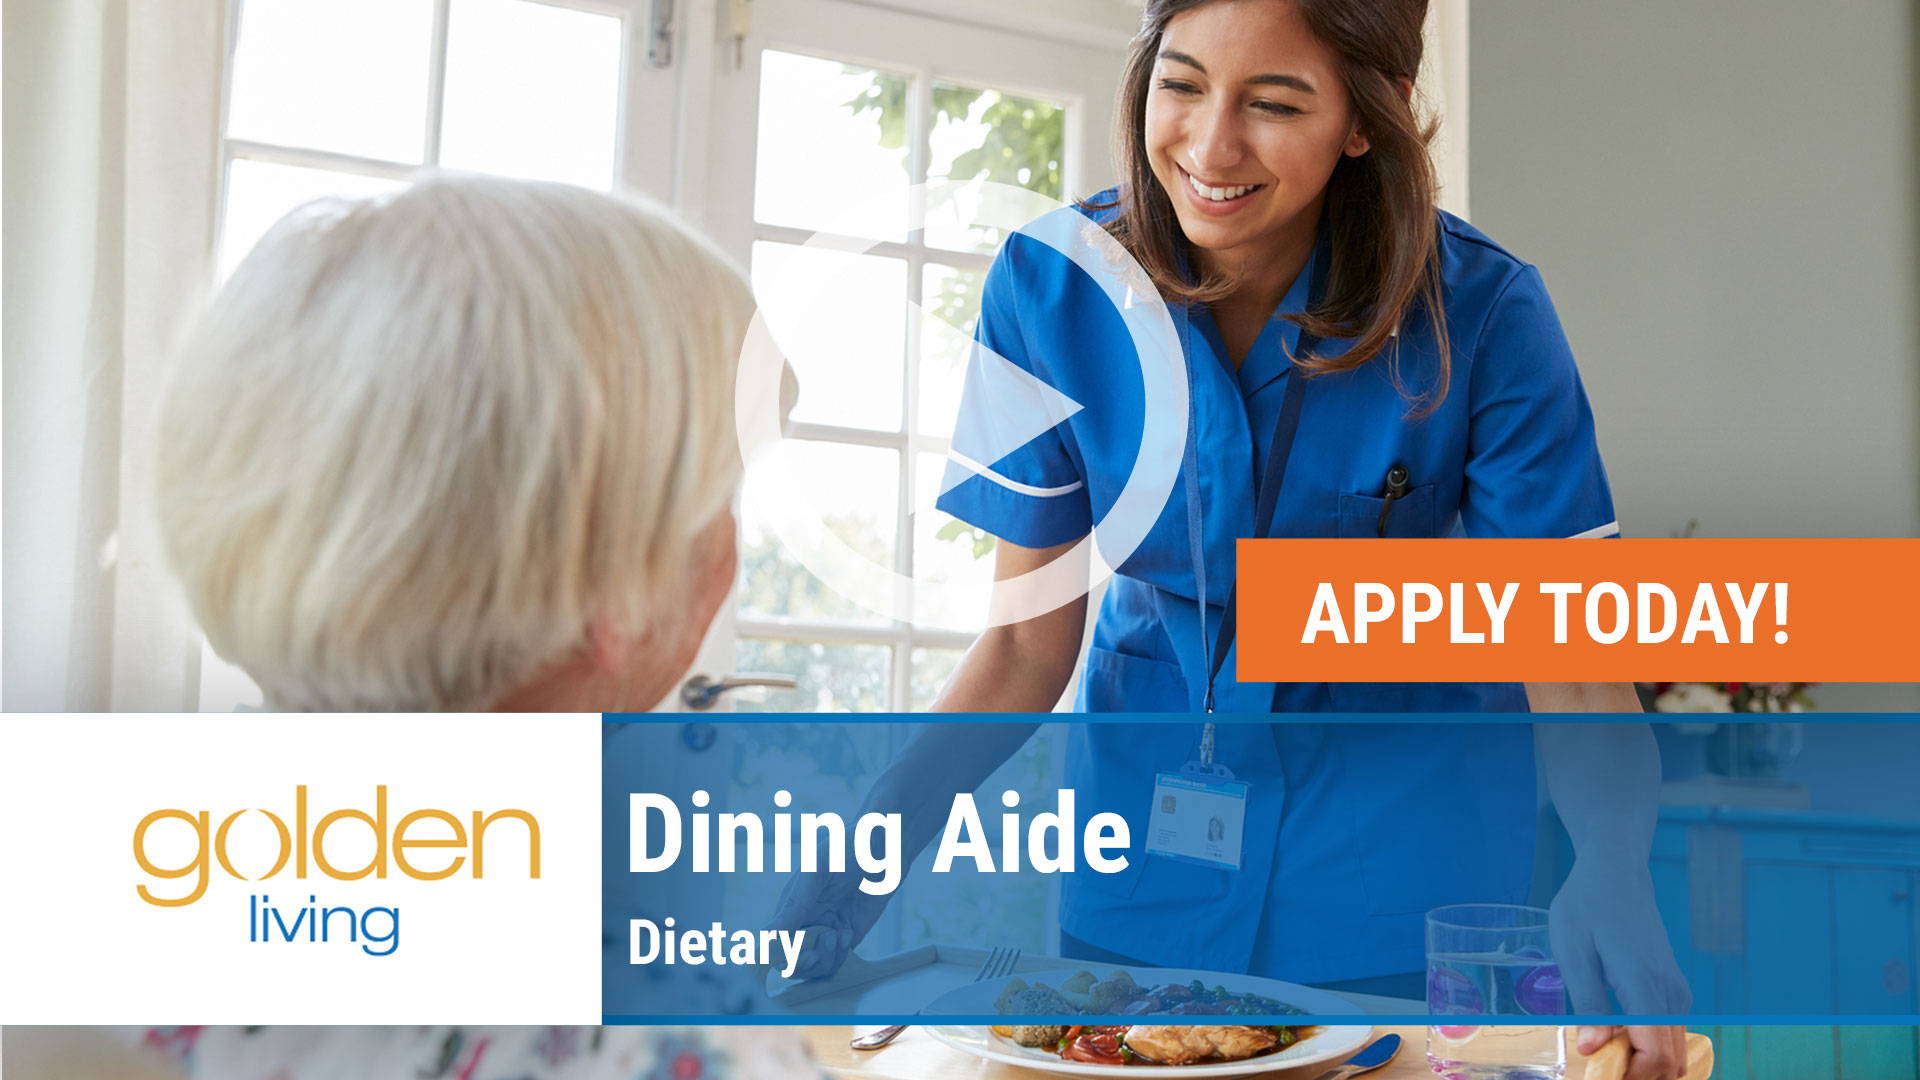 Watch our careers video for available job opening Dietary - Dining Aide in Indiana, IN